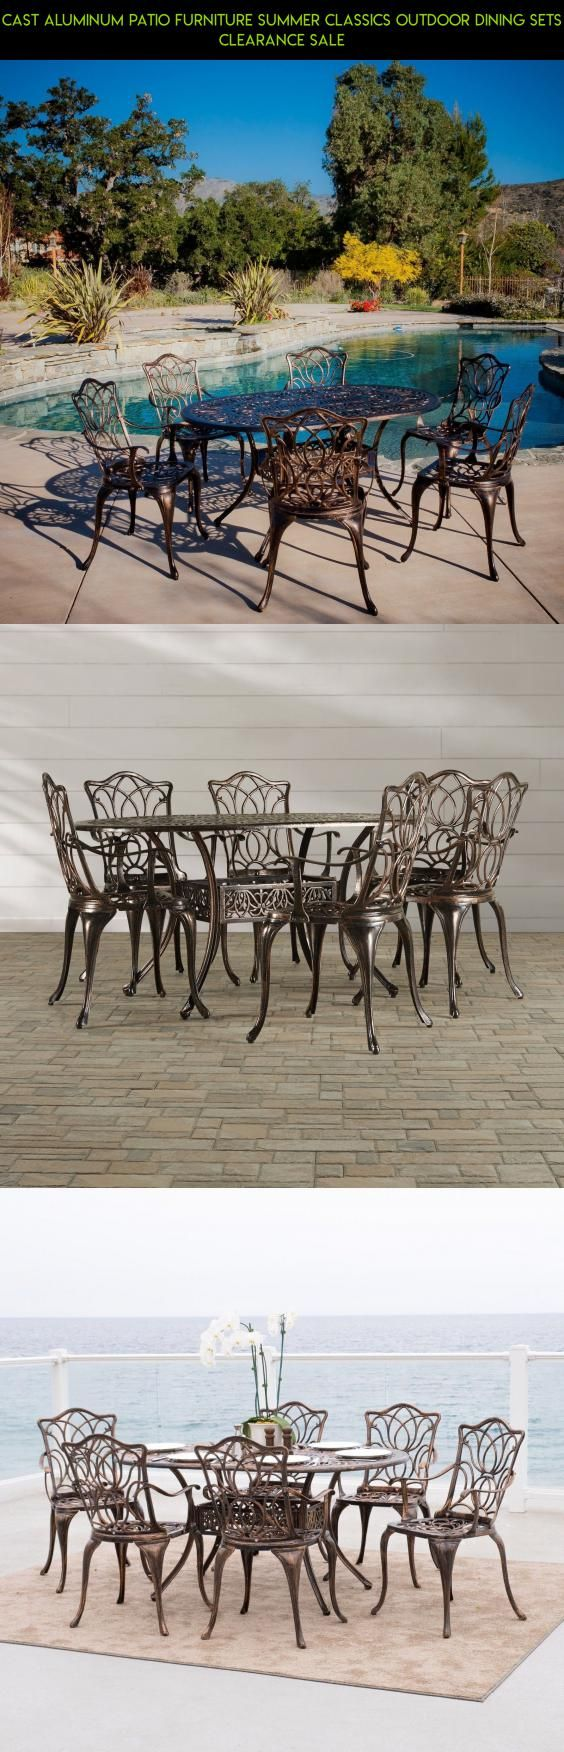 25+ best ideas about Patio Furniture Clearance Sale on Pinterest |  Conservatory furniture sale, Rattan garden furniture sale and Clearance  furniture - 25+ Best Ideas About Patio Furniture Clearance Sale On Pinterest